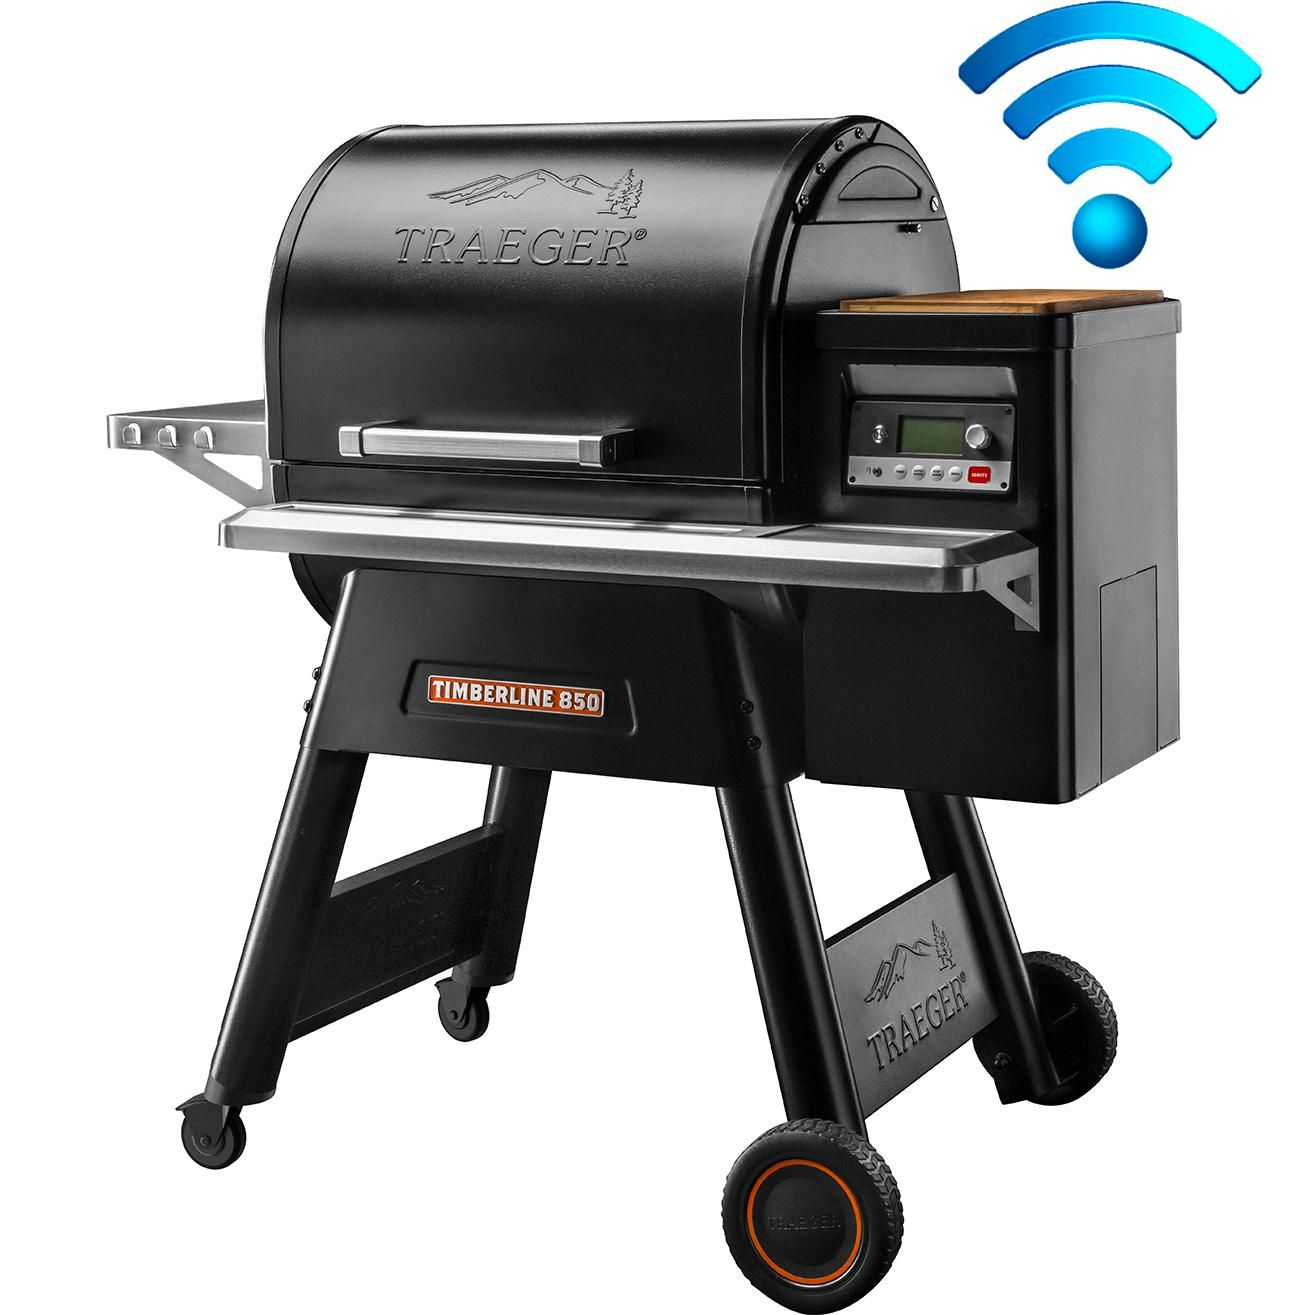 Traeger Timberline 850 Wi-Fi Controlled Wood Pellet Grill ...